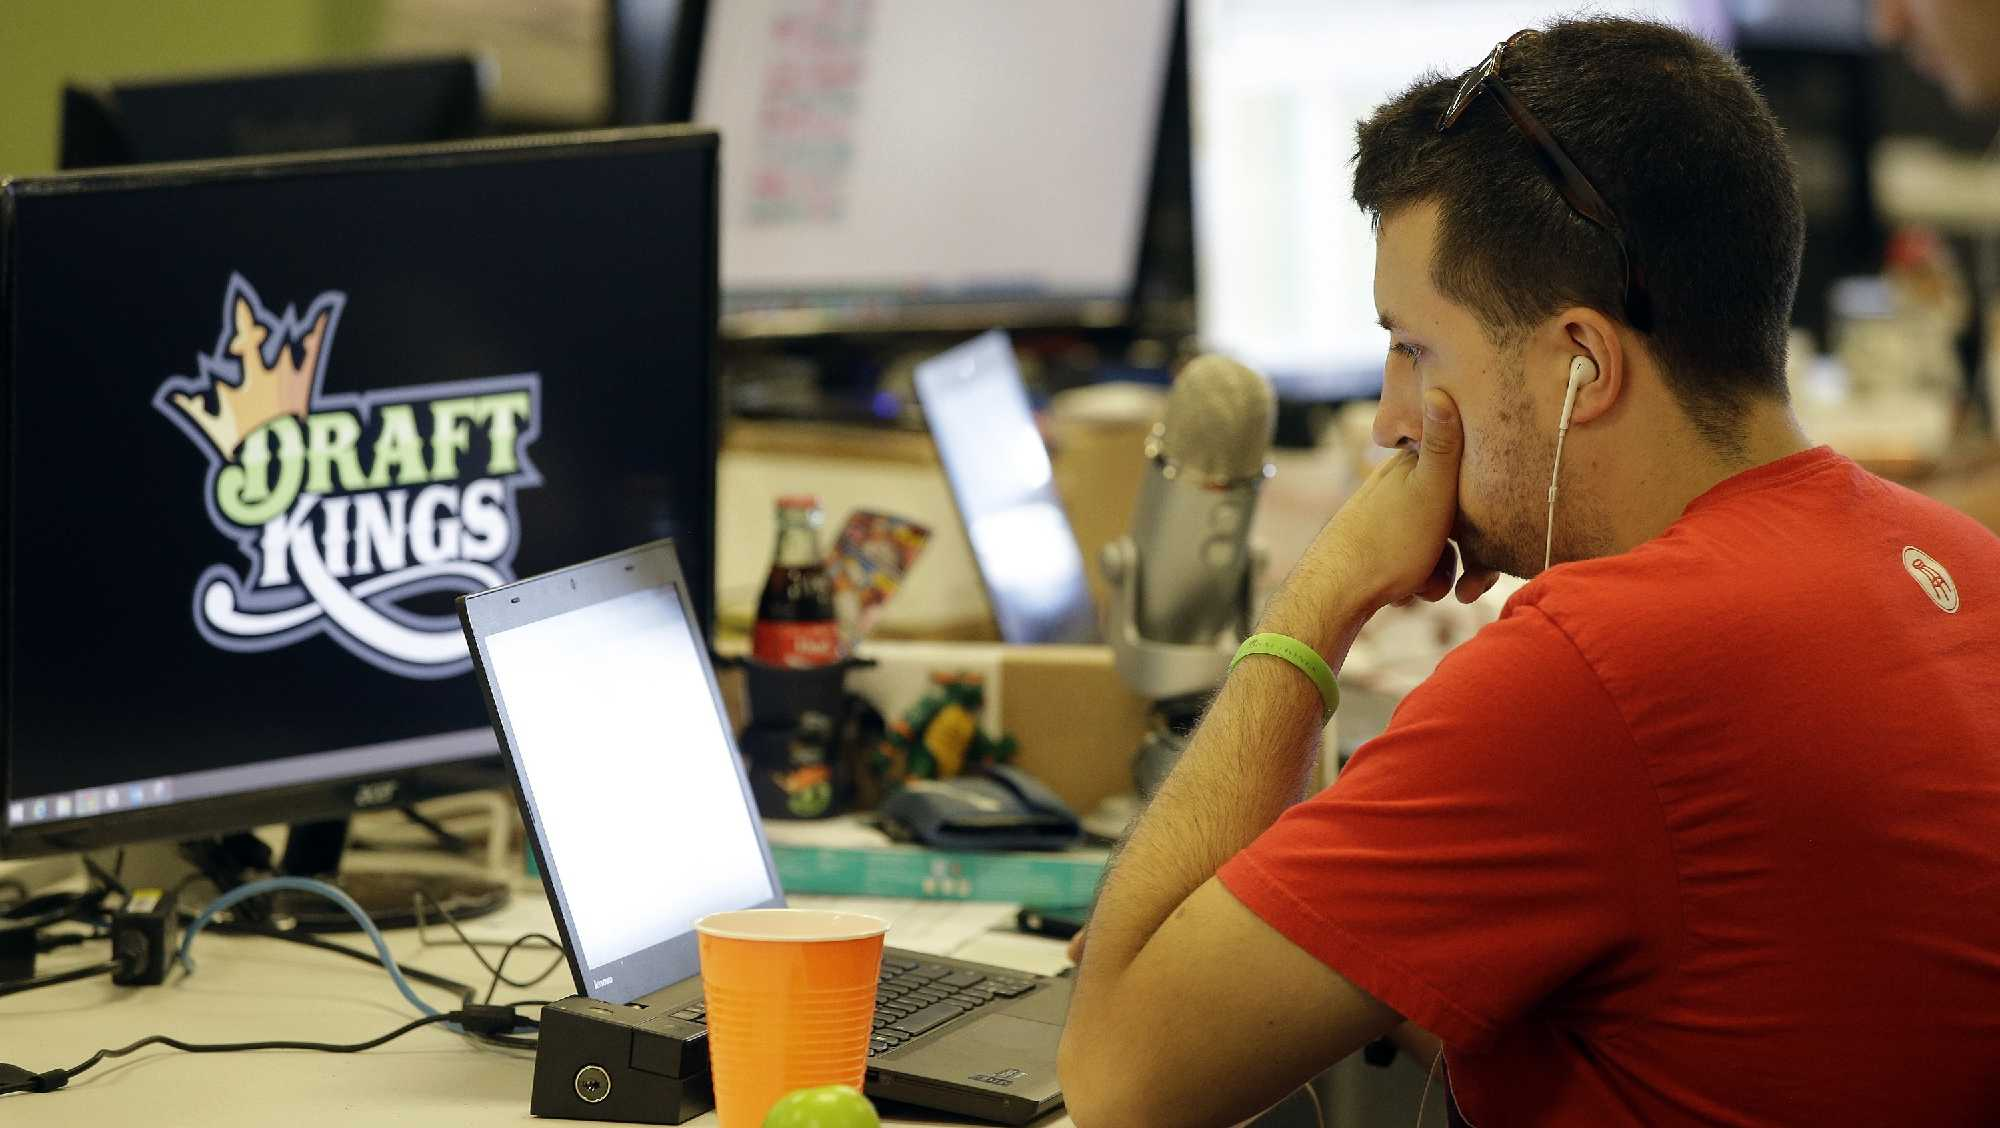 In this Sept. 9, 2015, file photo, Devlin D'Zmura, a trending news manager at DraftKings, a daily fantasy sports company, works on his laptop at the company's offices in Boston.